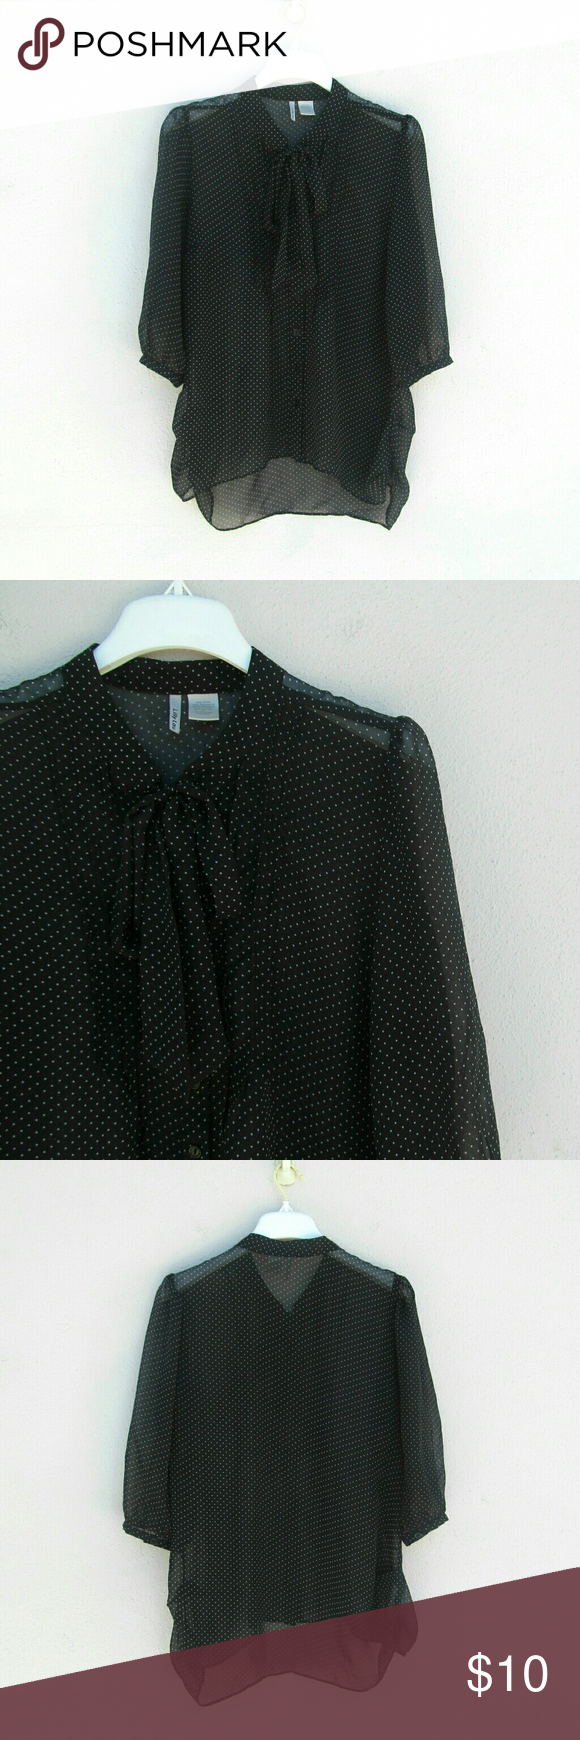 Cute Polka Dot Black Top Size Extra Large I offer bundle discounts :) Tops Blouses